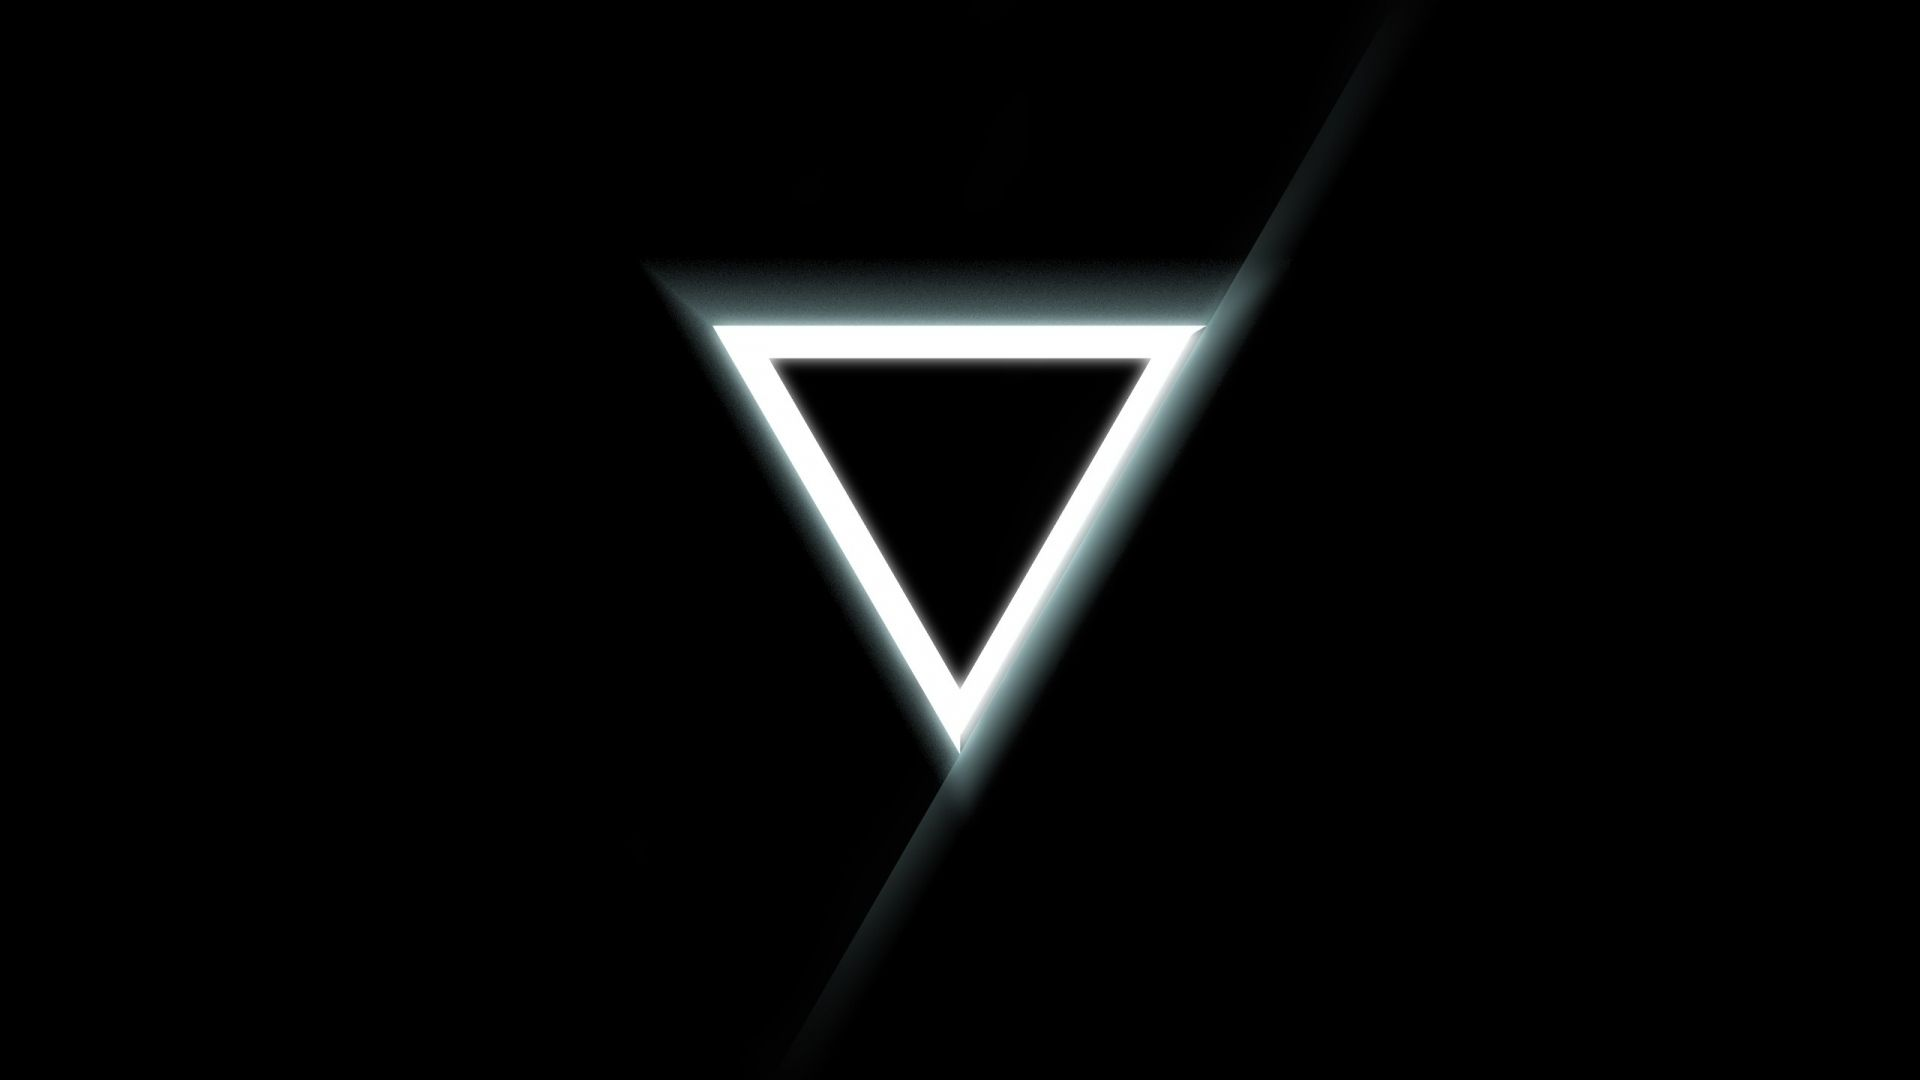 download wallpaper 1920x1080 triangle inverted black white full